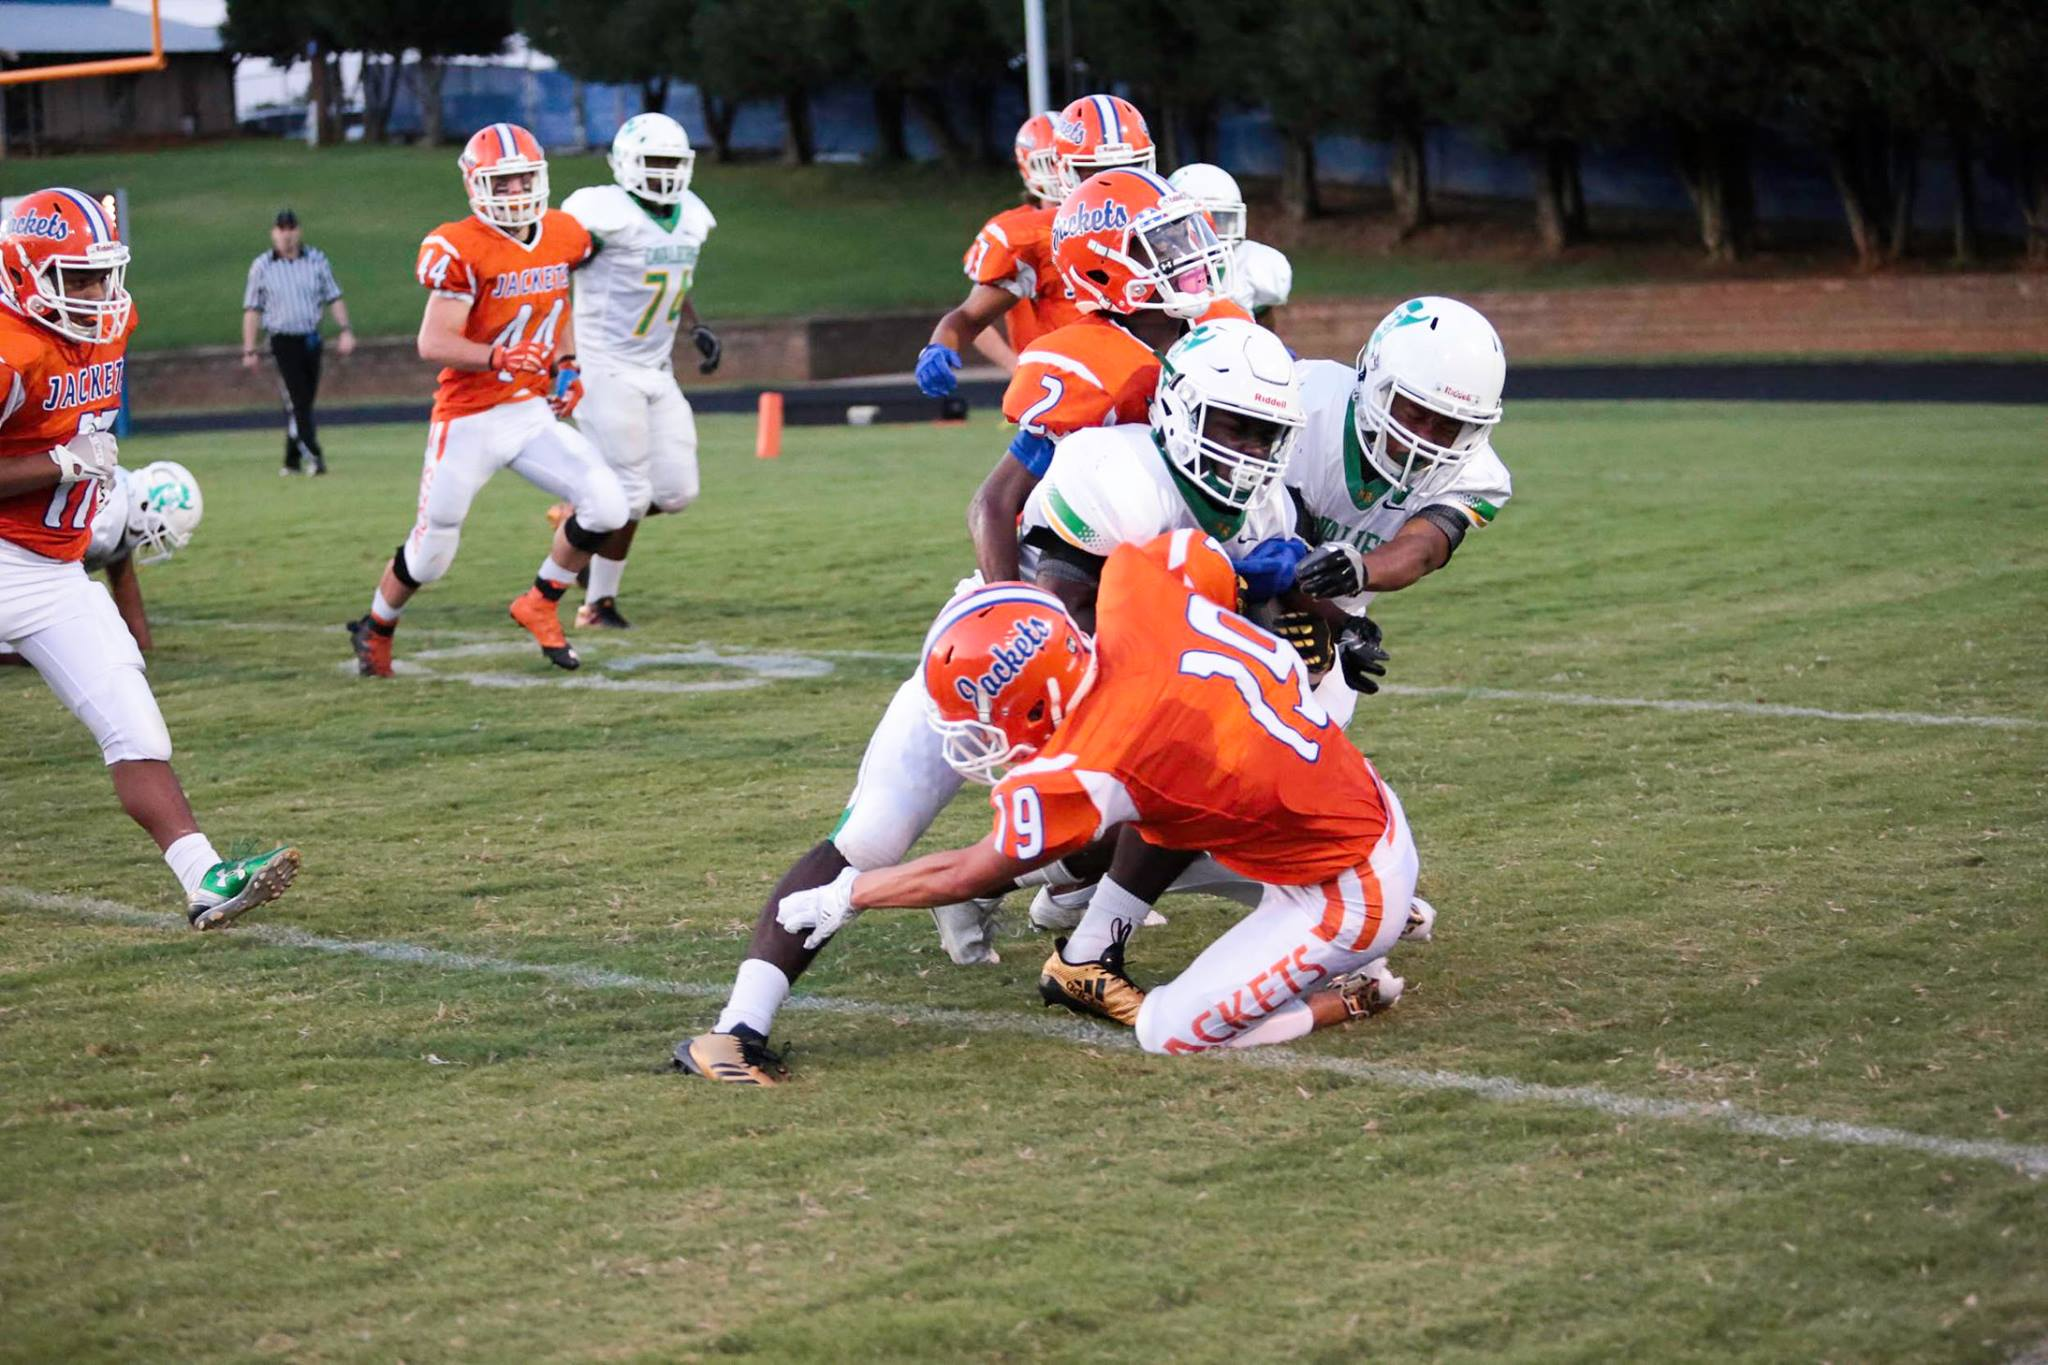 North Rowan Varsity Football 54-7 over North Moore